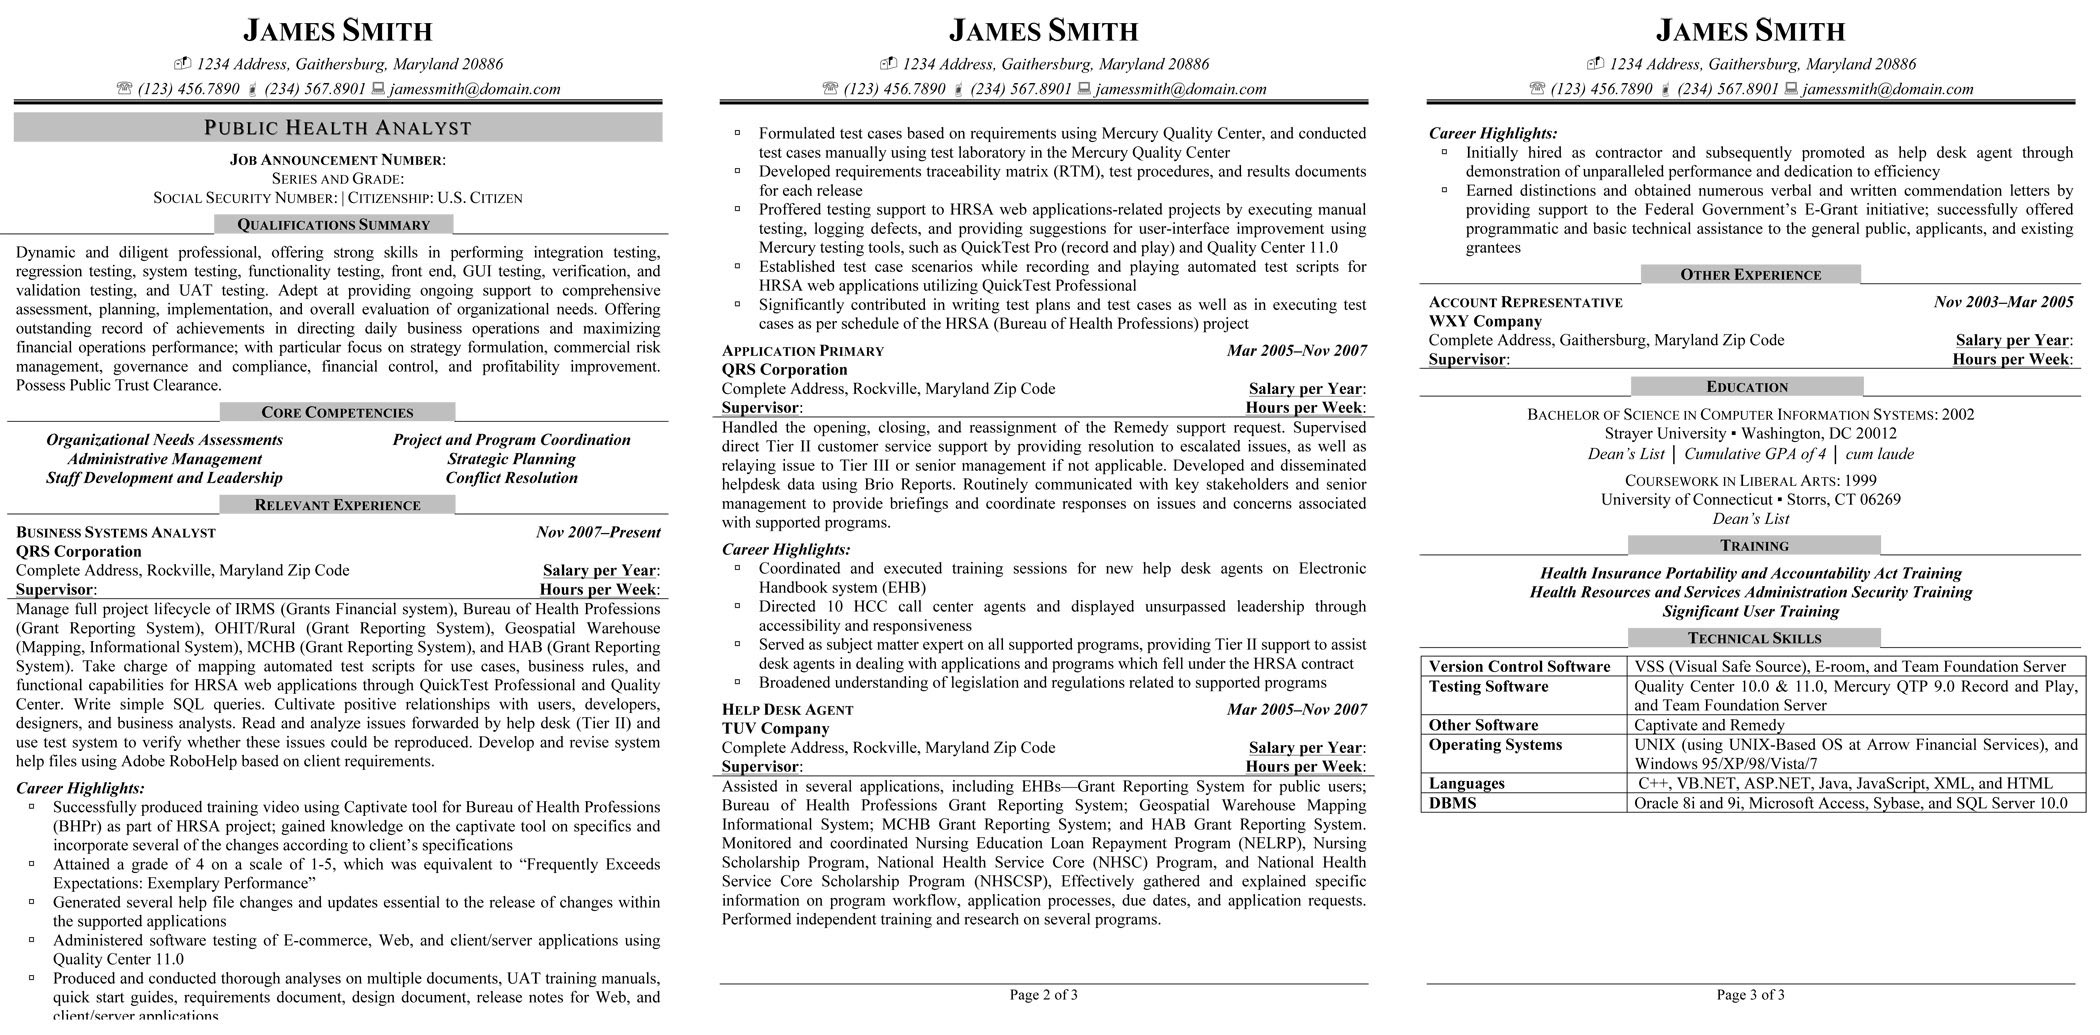 Federal Resume resume3 bills federal resume4 military resume sample Public Health Analyst Resume